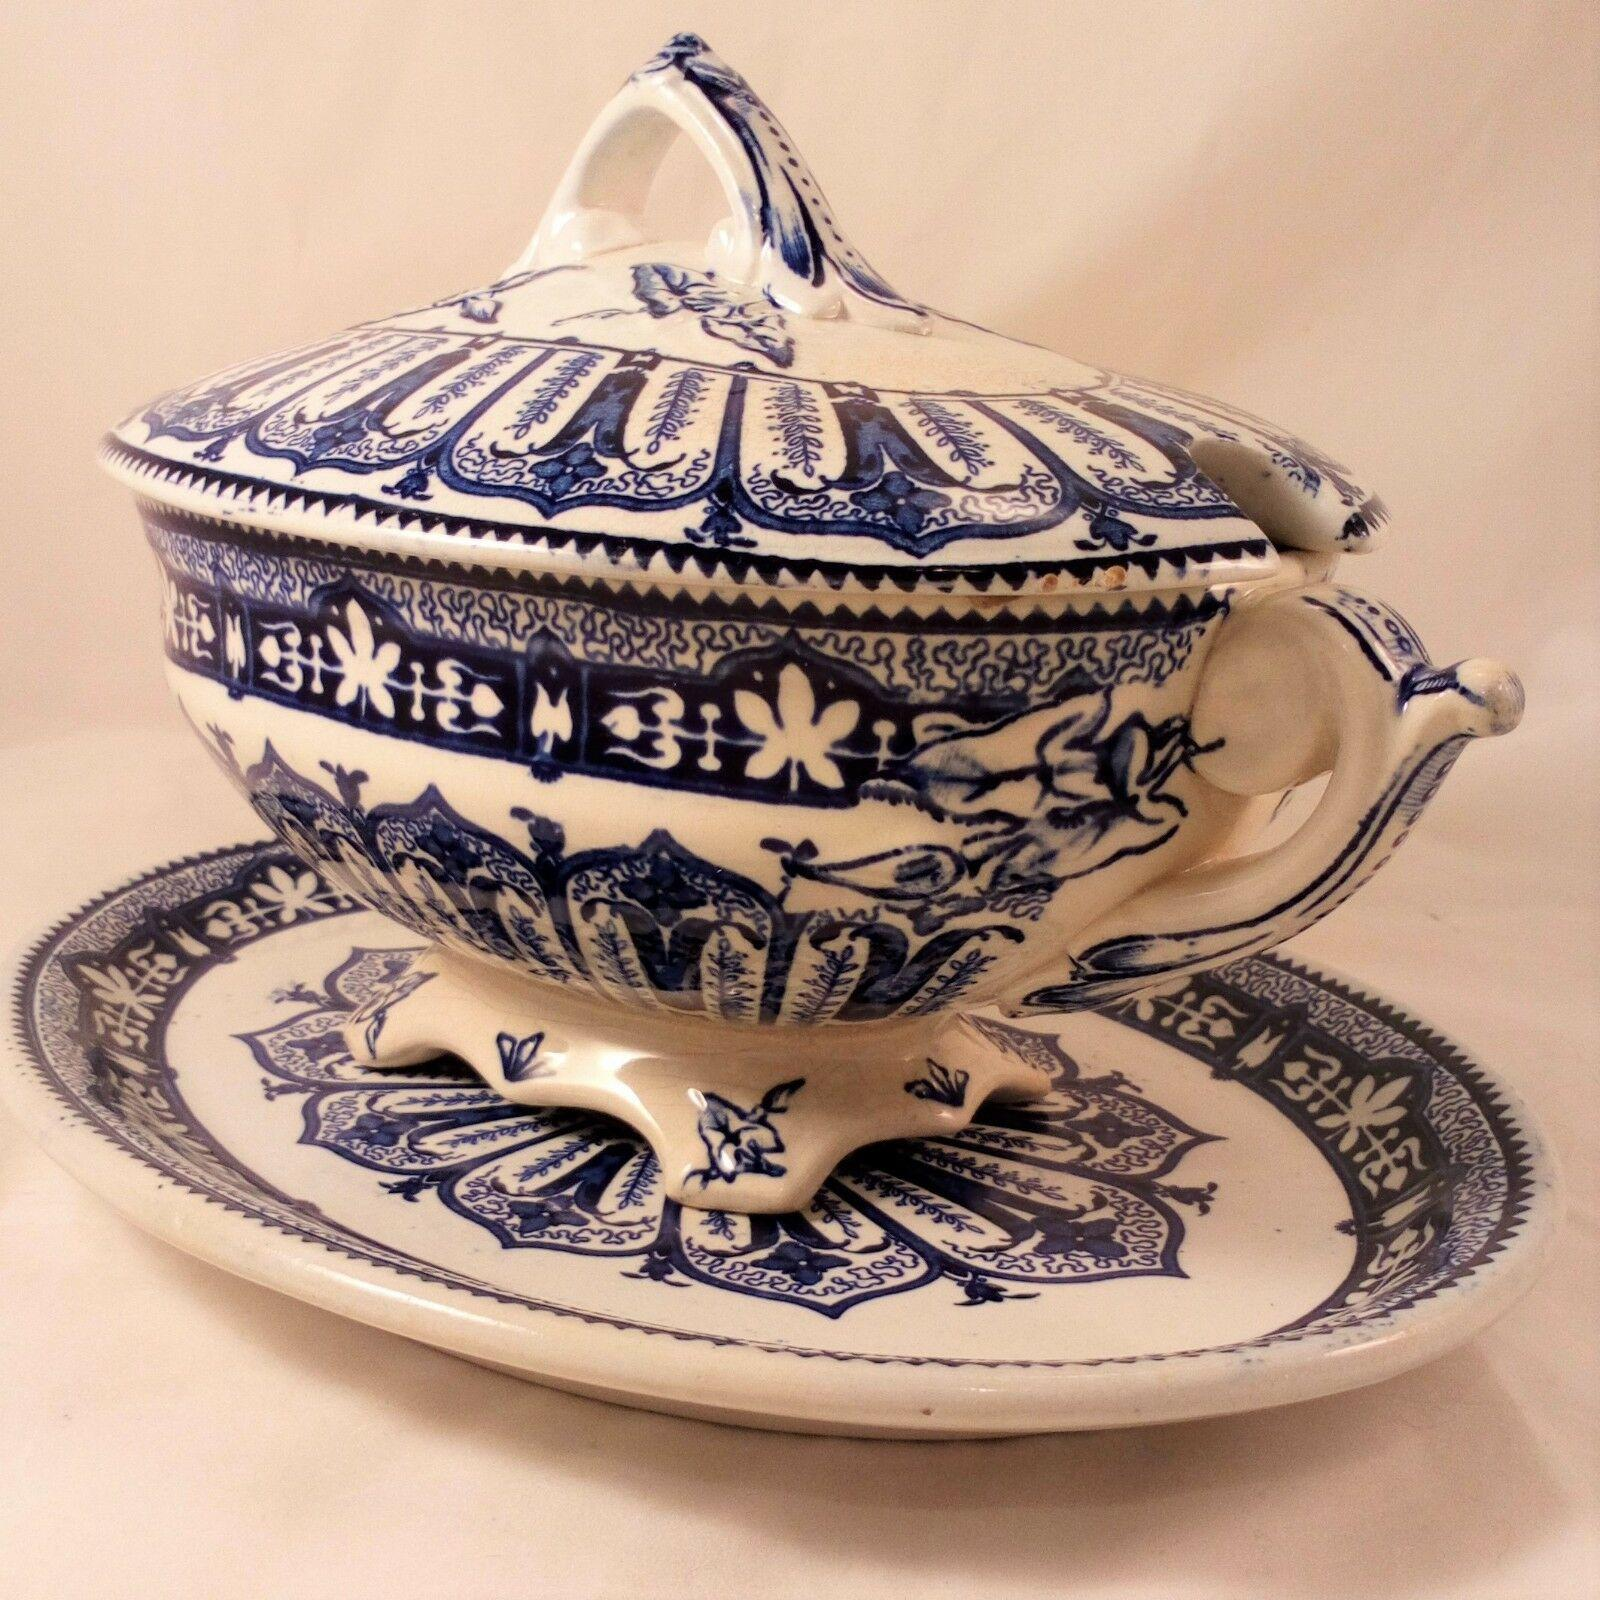 Antique Blue Transferware Sauce Tureen and Stand Burgess & Leigh Aesthetic c1880